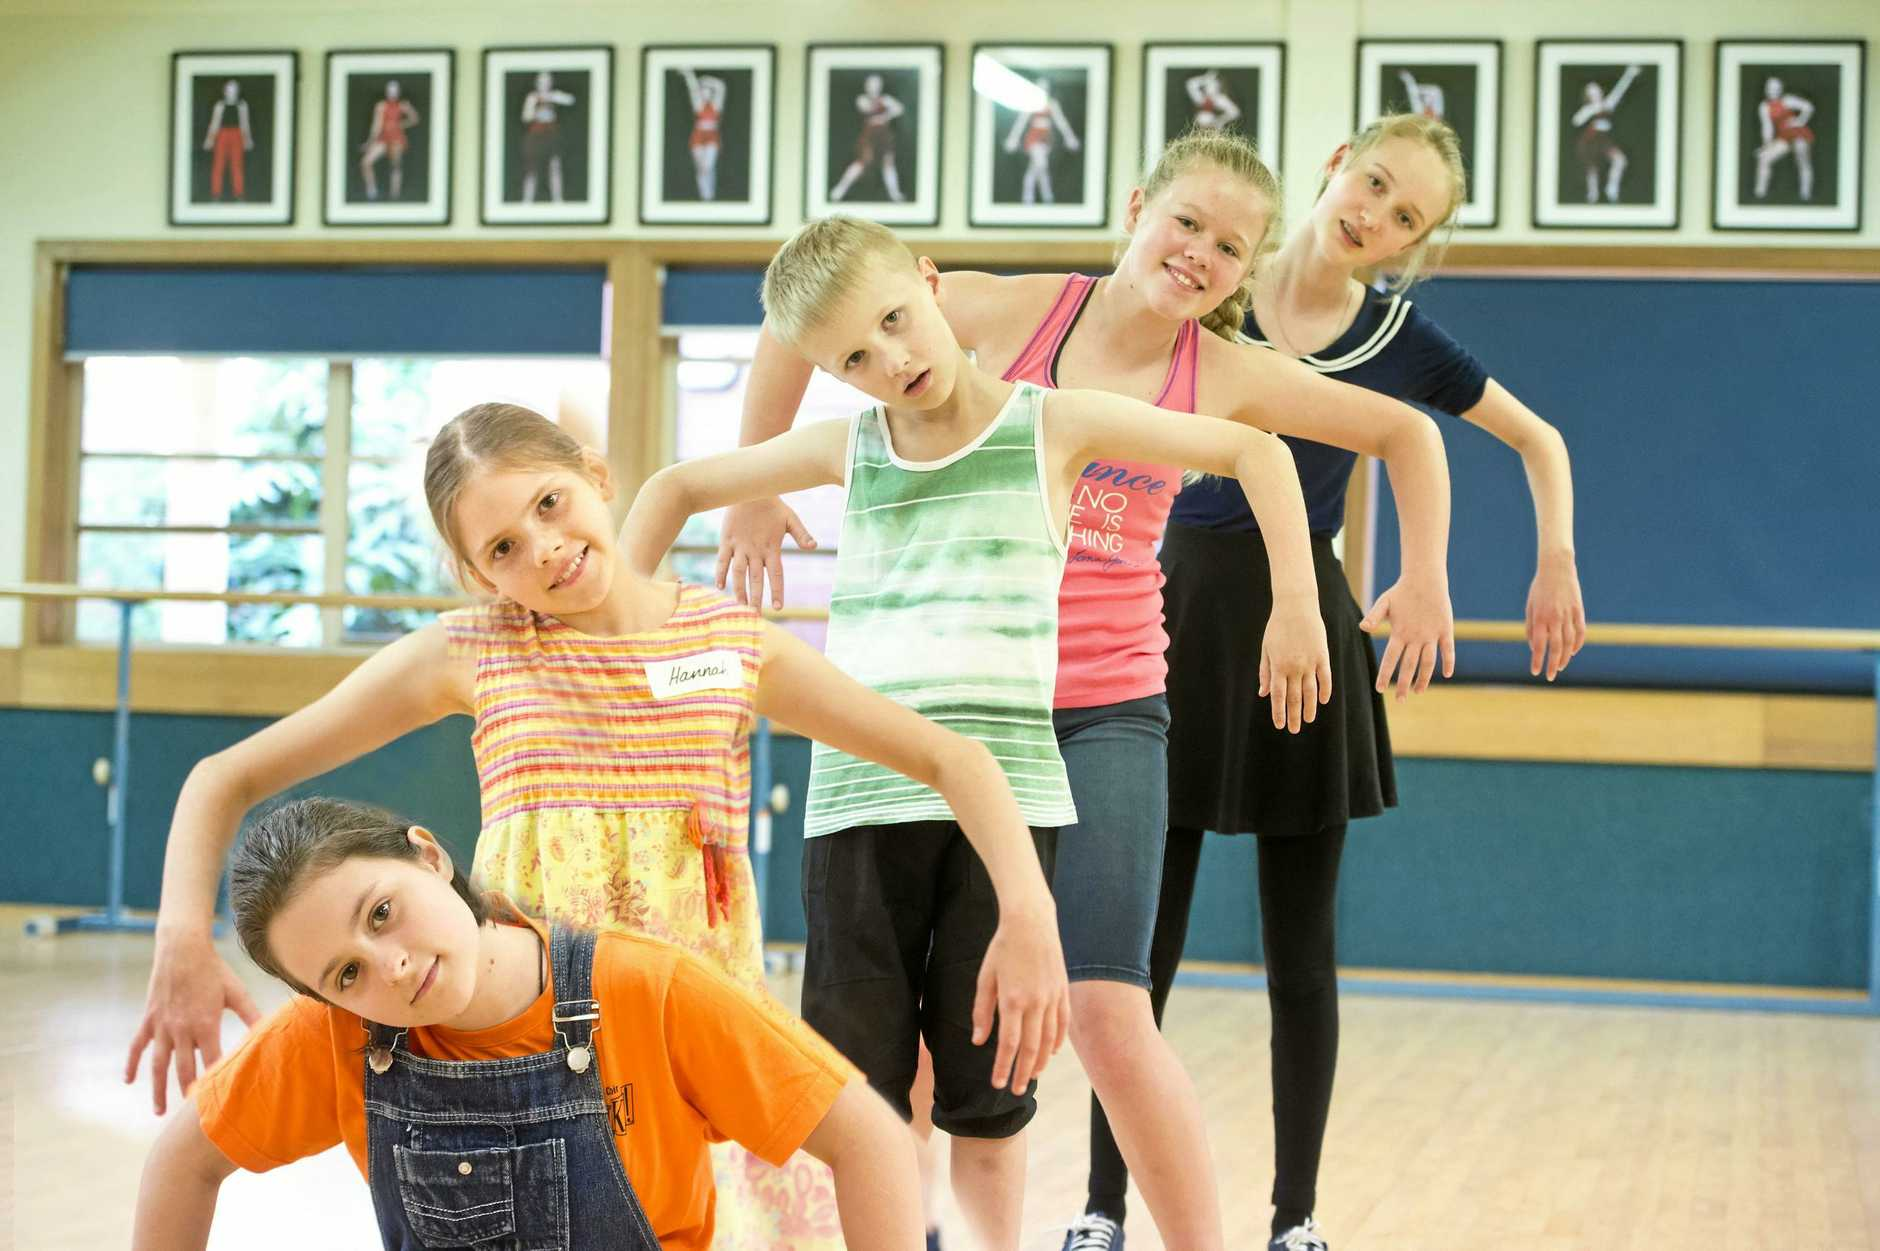 Learning the choreography are (from left) Clare Todd, Hannah Pocknee, Darcy Maegher, Ashlee Geoghegan and Eryn Stewart. Toowoomba Choral Society Youth Choir auditions for My Son Pinocchio: Gepetteos Musical Tale. Saturday, 24th Mar 2018.